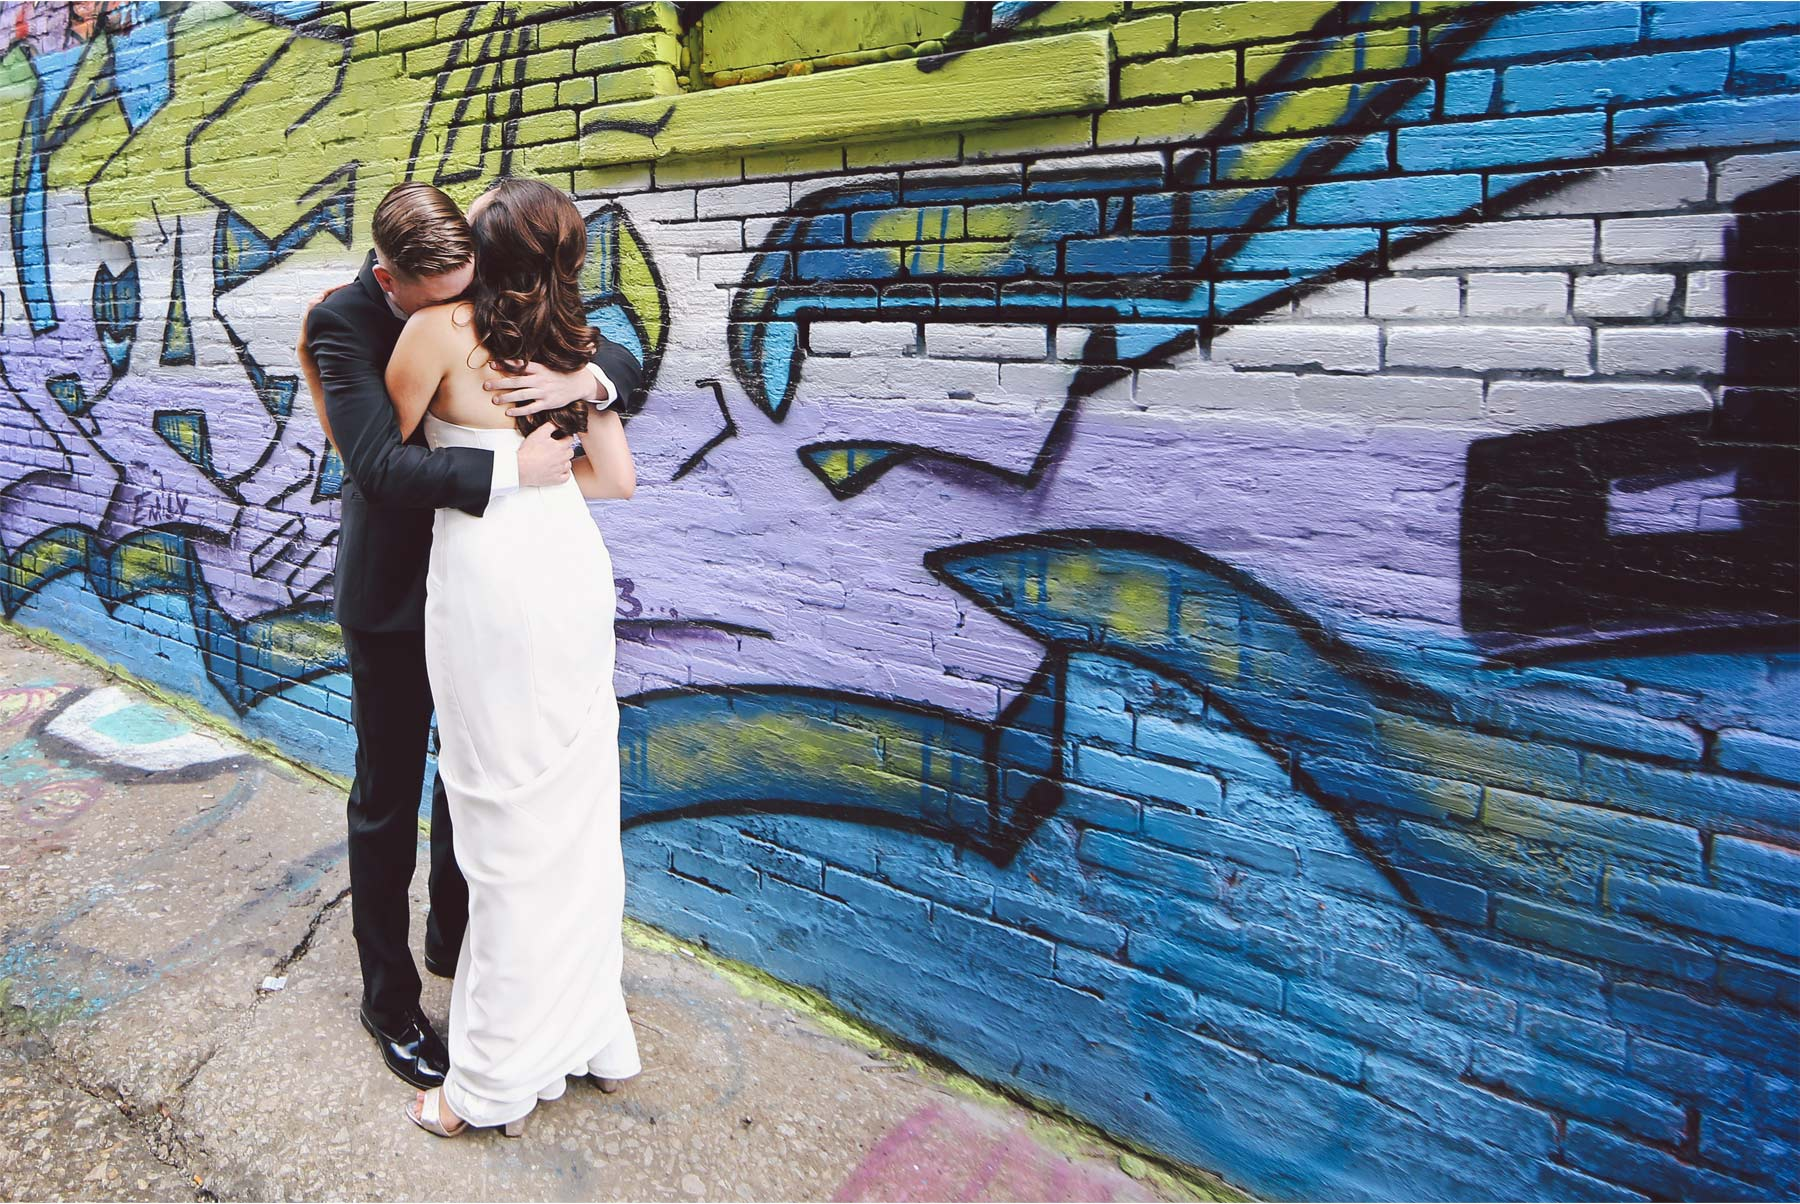 06-Kansas-City-Missouri-Destination-Wedding-Photography-by-Vick-Photography-First-Look-Graffiti-Wall-Downtown-Carly-and-Kenny.jpg